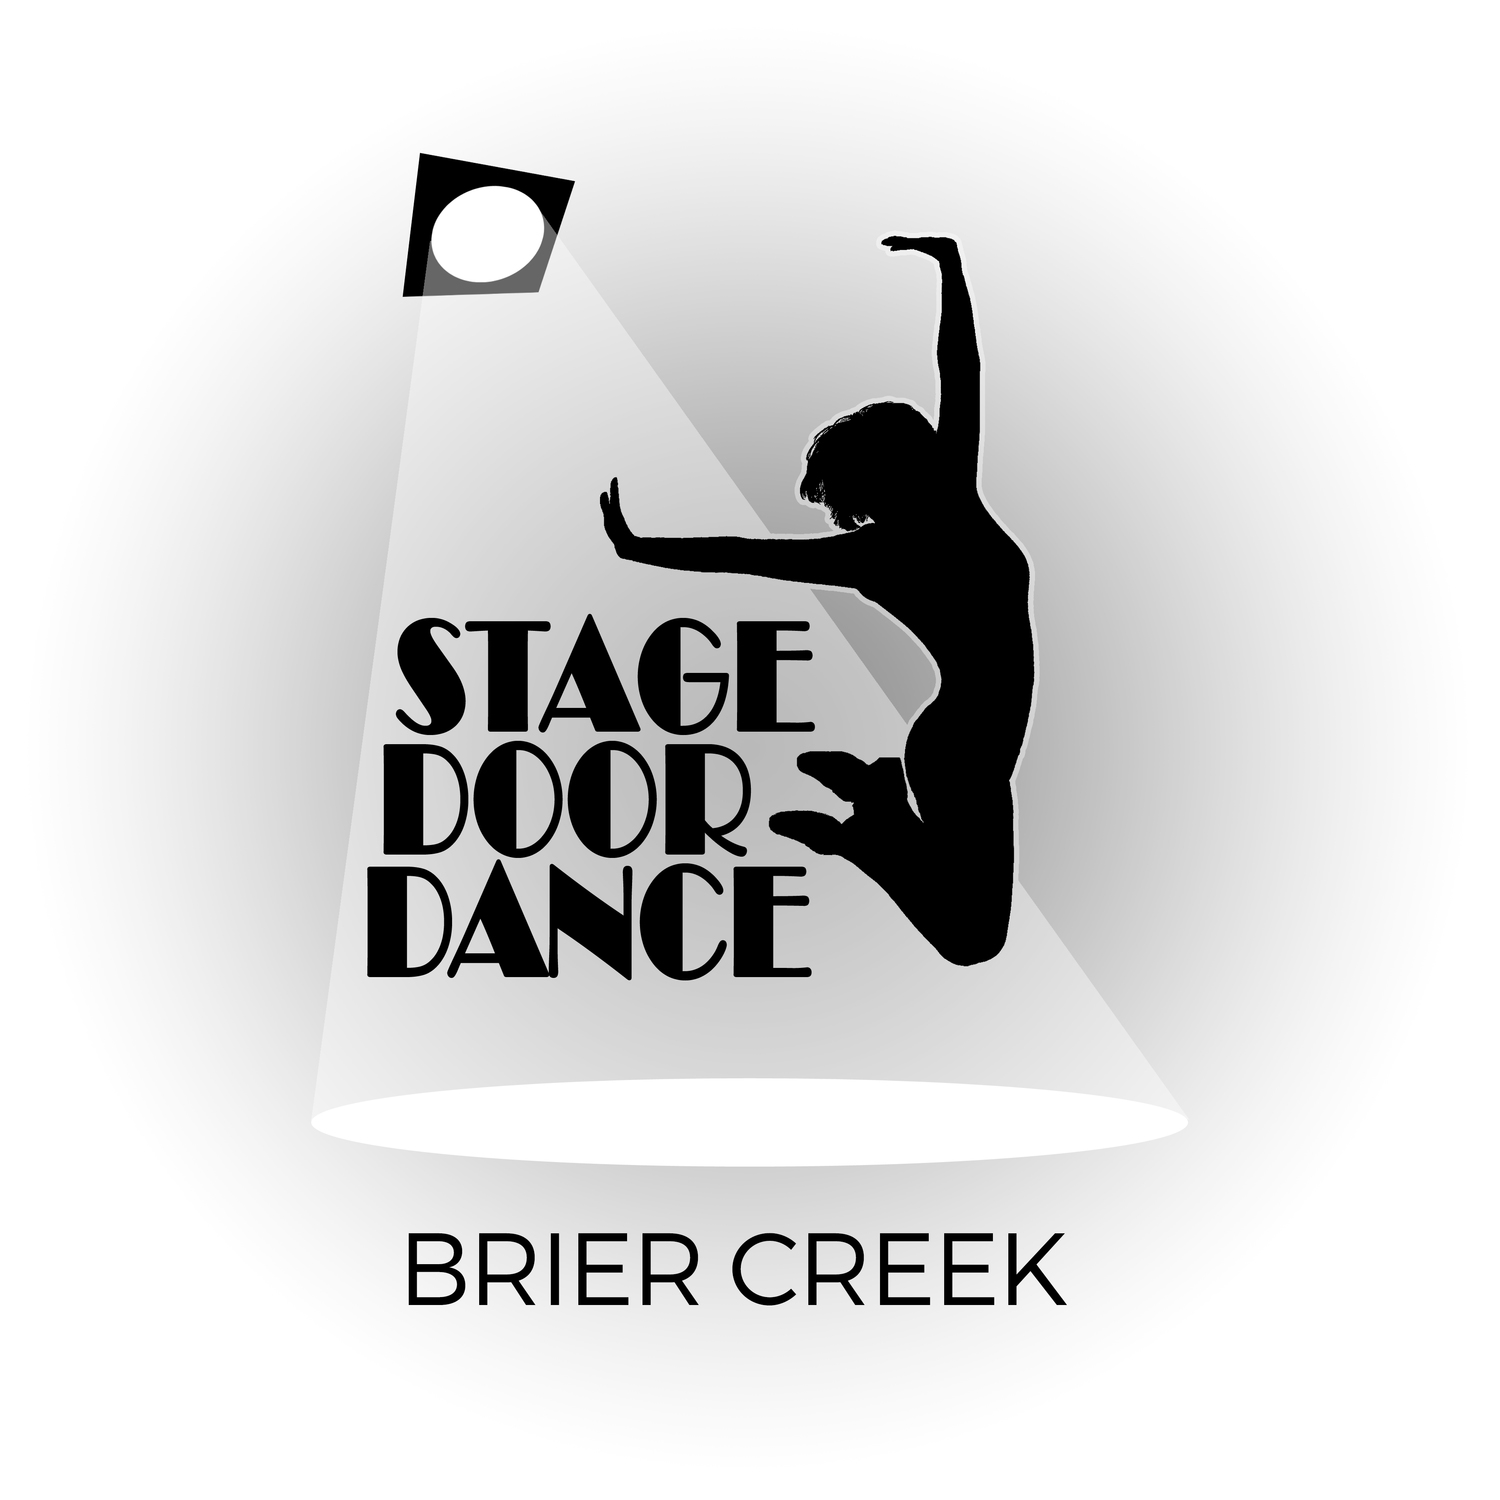 Stage Door Dance: Brier Creek